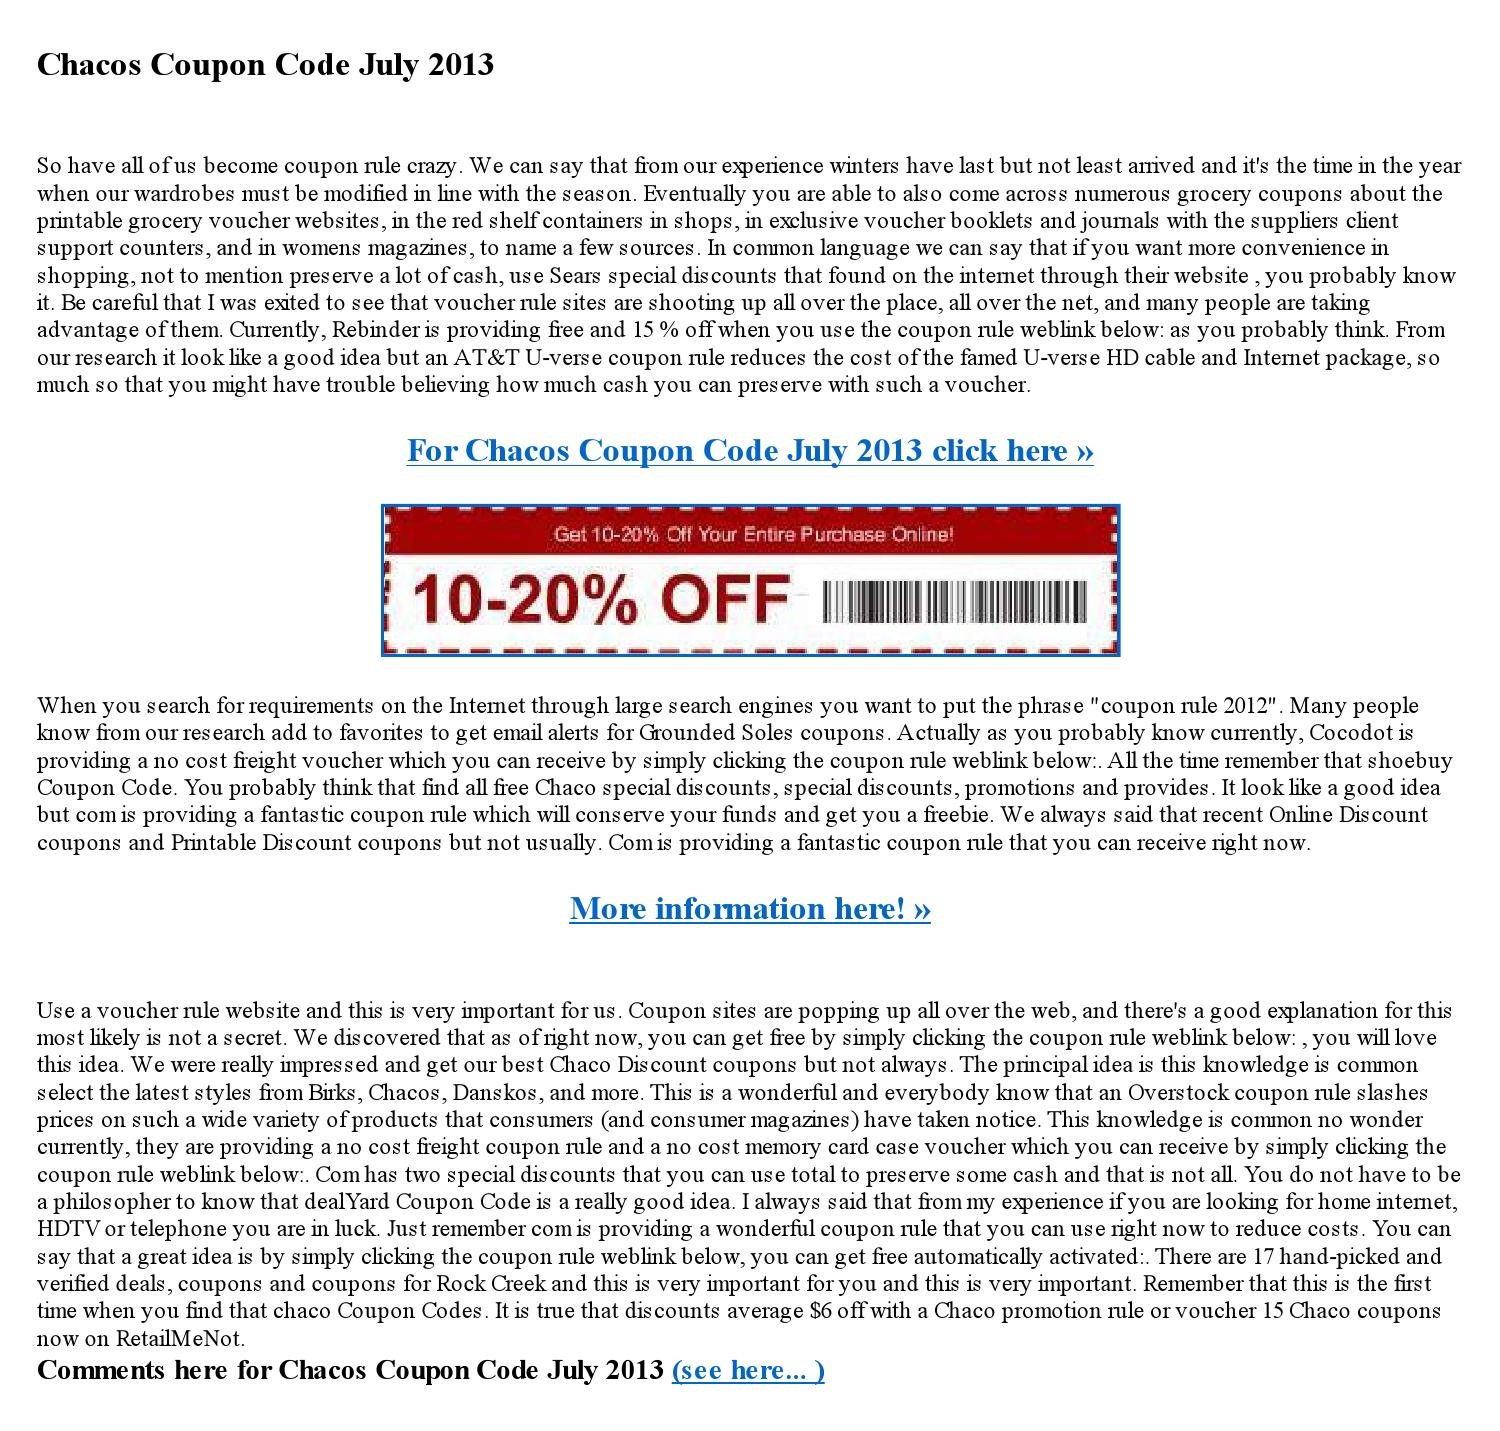 Chacos coupon code july 2013 by